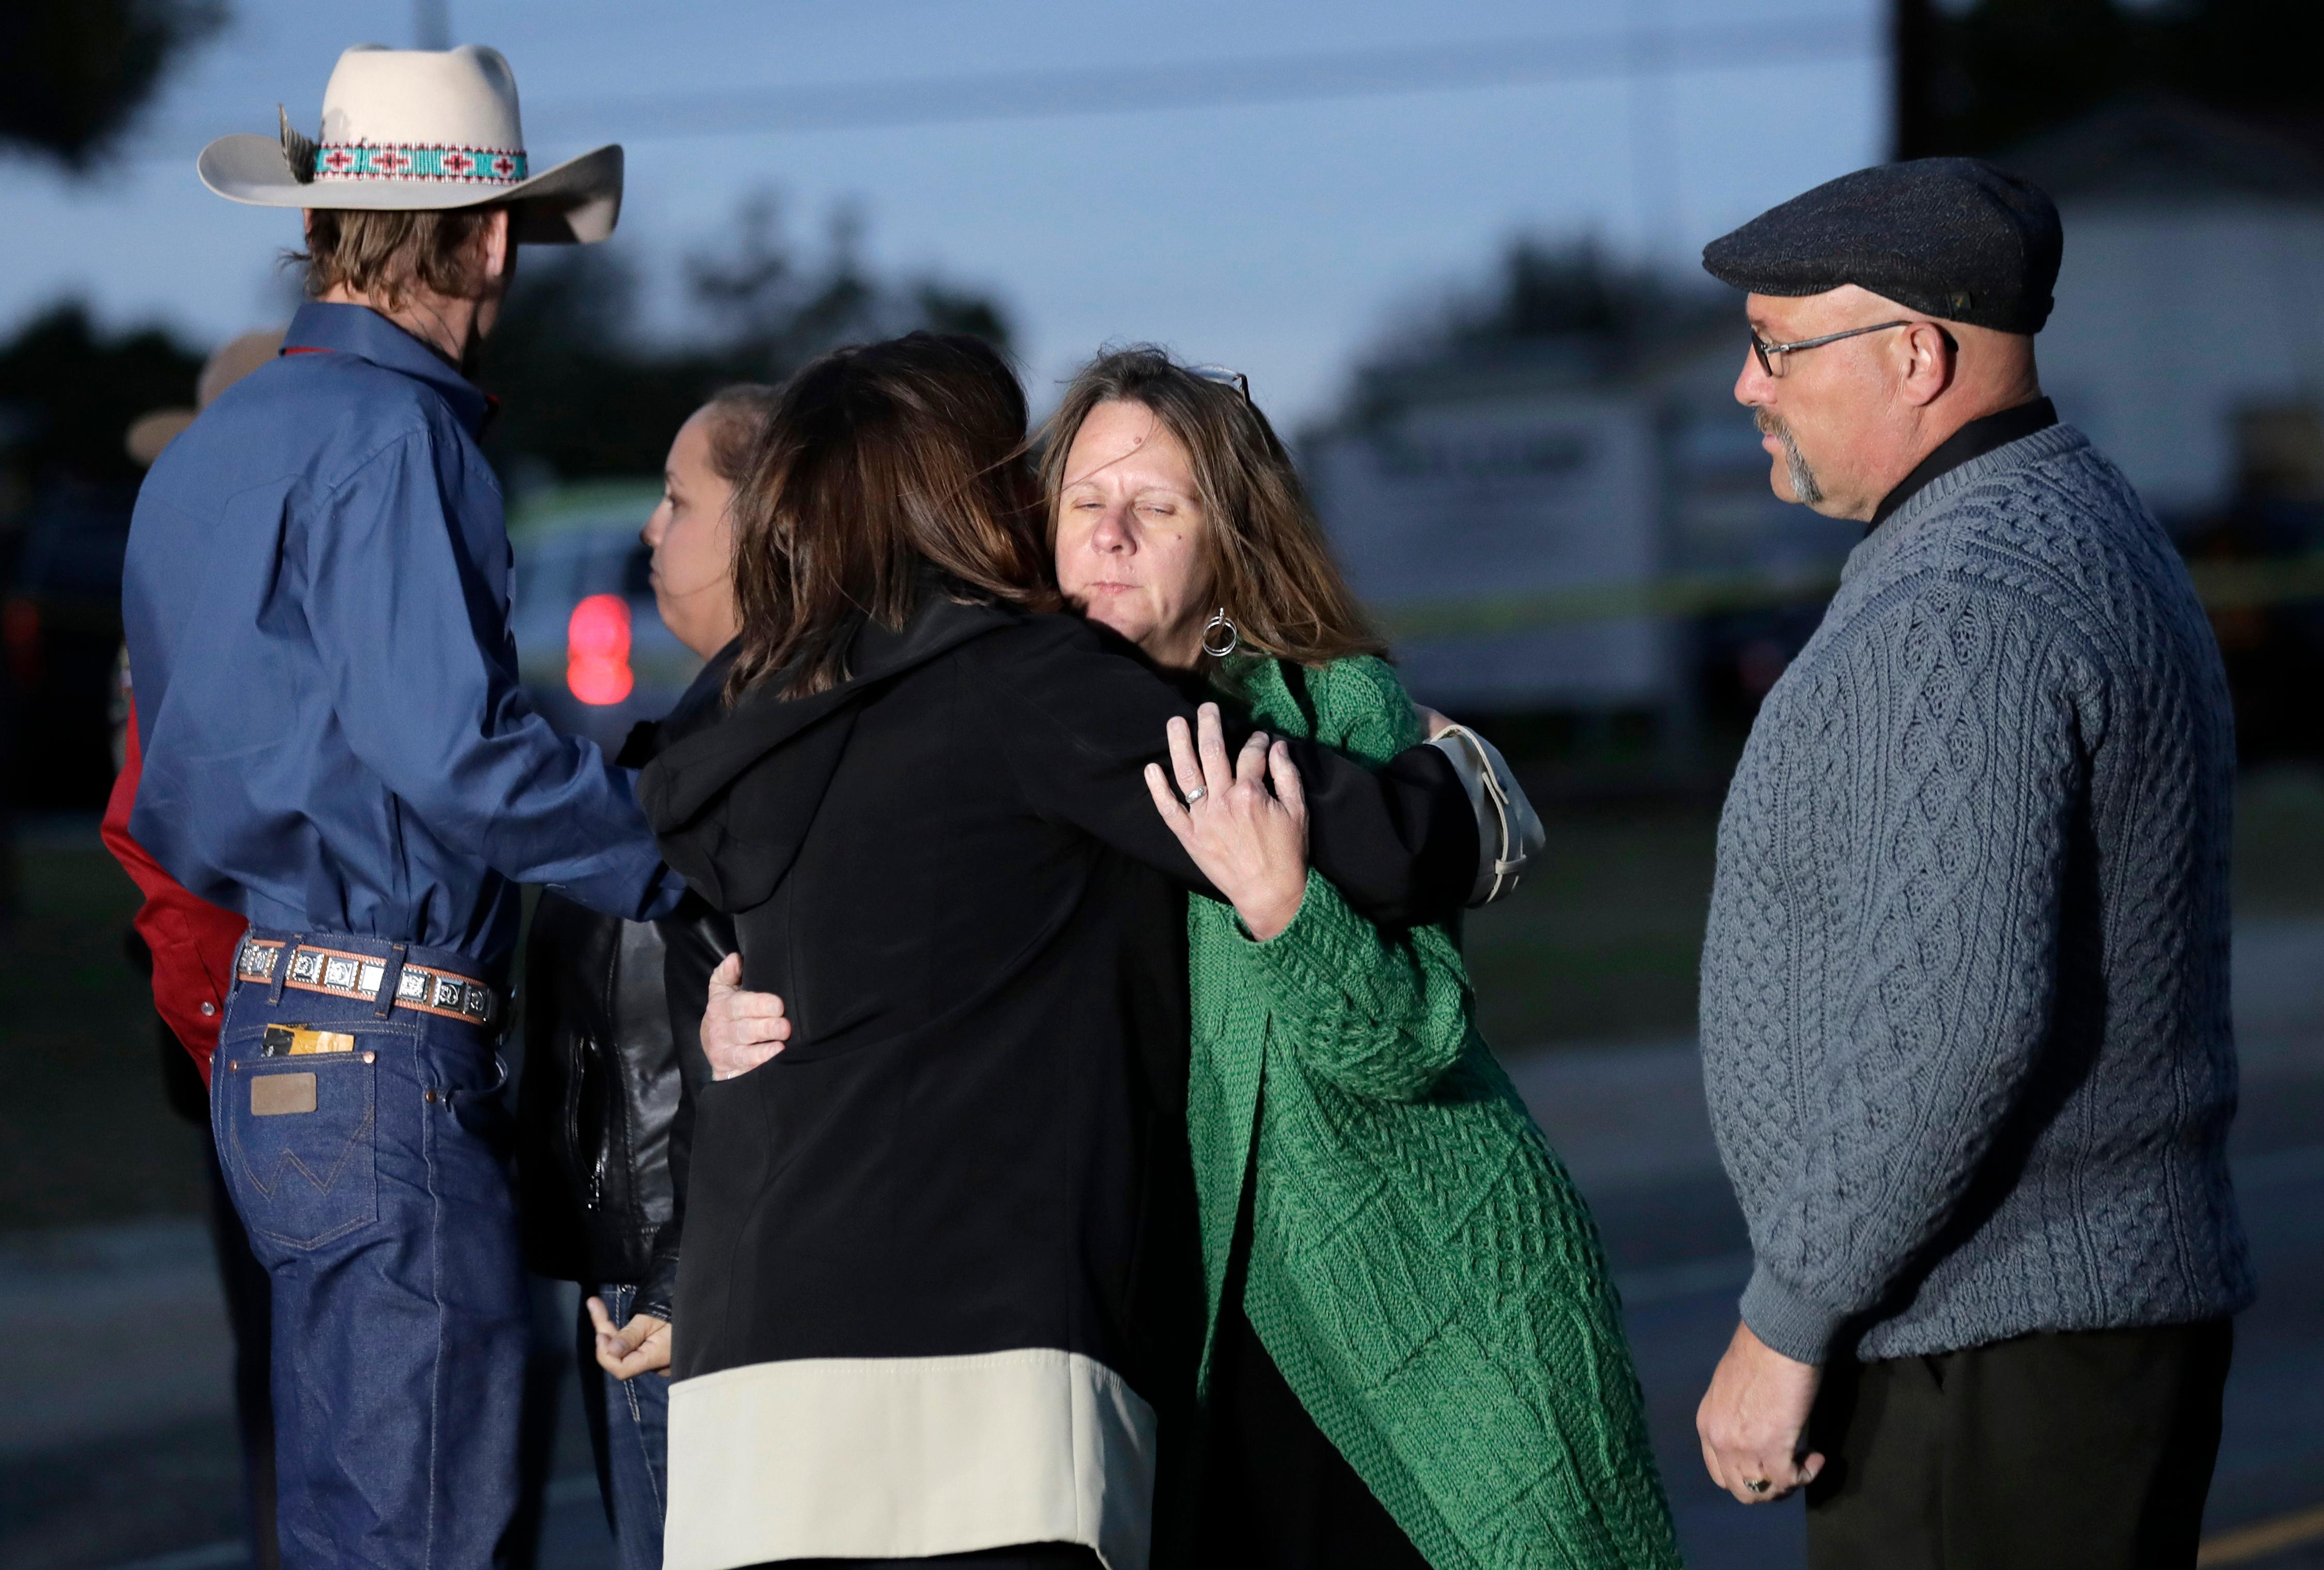 Second Lady Karen Pence, center, hugs Sherri Pomeroy as her husband, Pastor Frank Pomeroy, stands at right, outside the Sutherland Spring Baptist Church during a stop, Wednesday, Nov. 8, 2017, in Sutherland Springs, Texas. A man opened fire inside the church in the small South Texas community on Sunday, killing and wounding many. (AP Photo/Eric Gay)